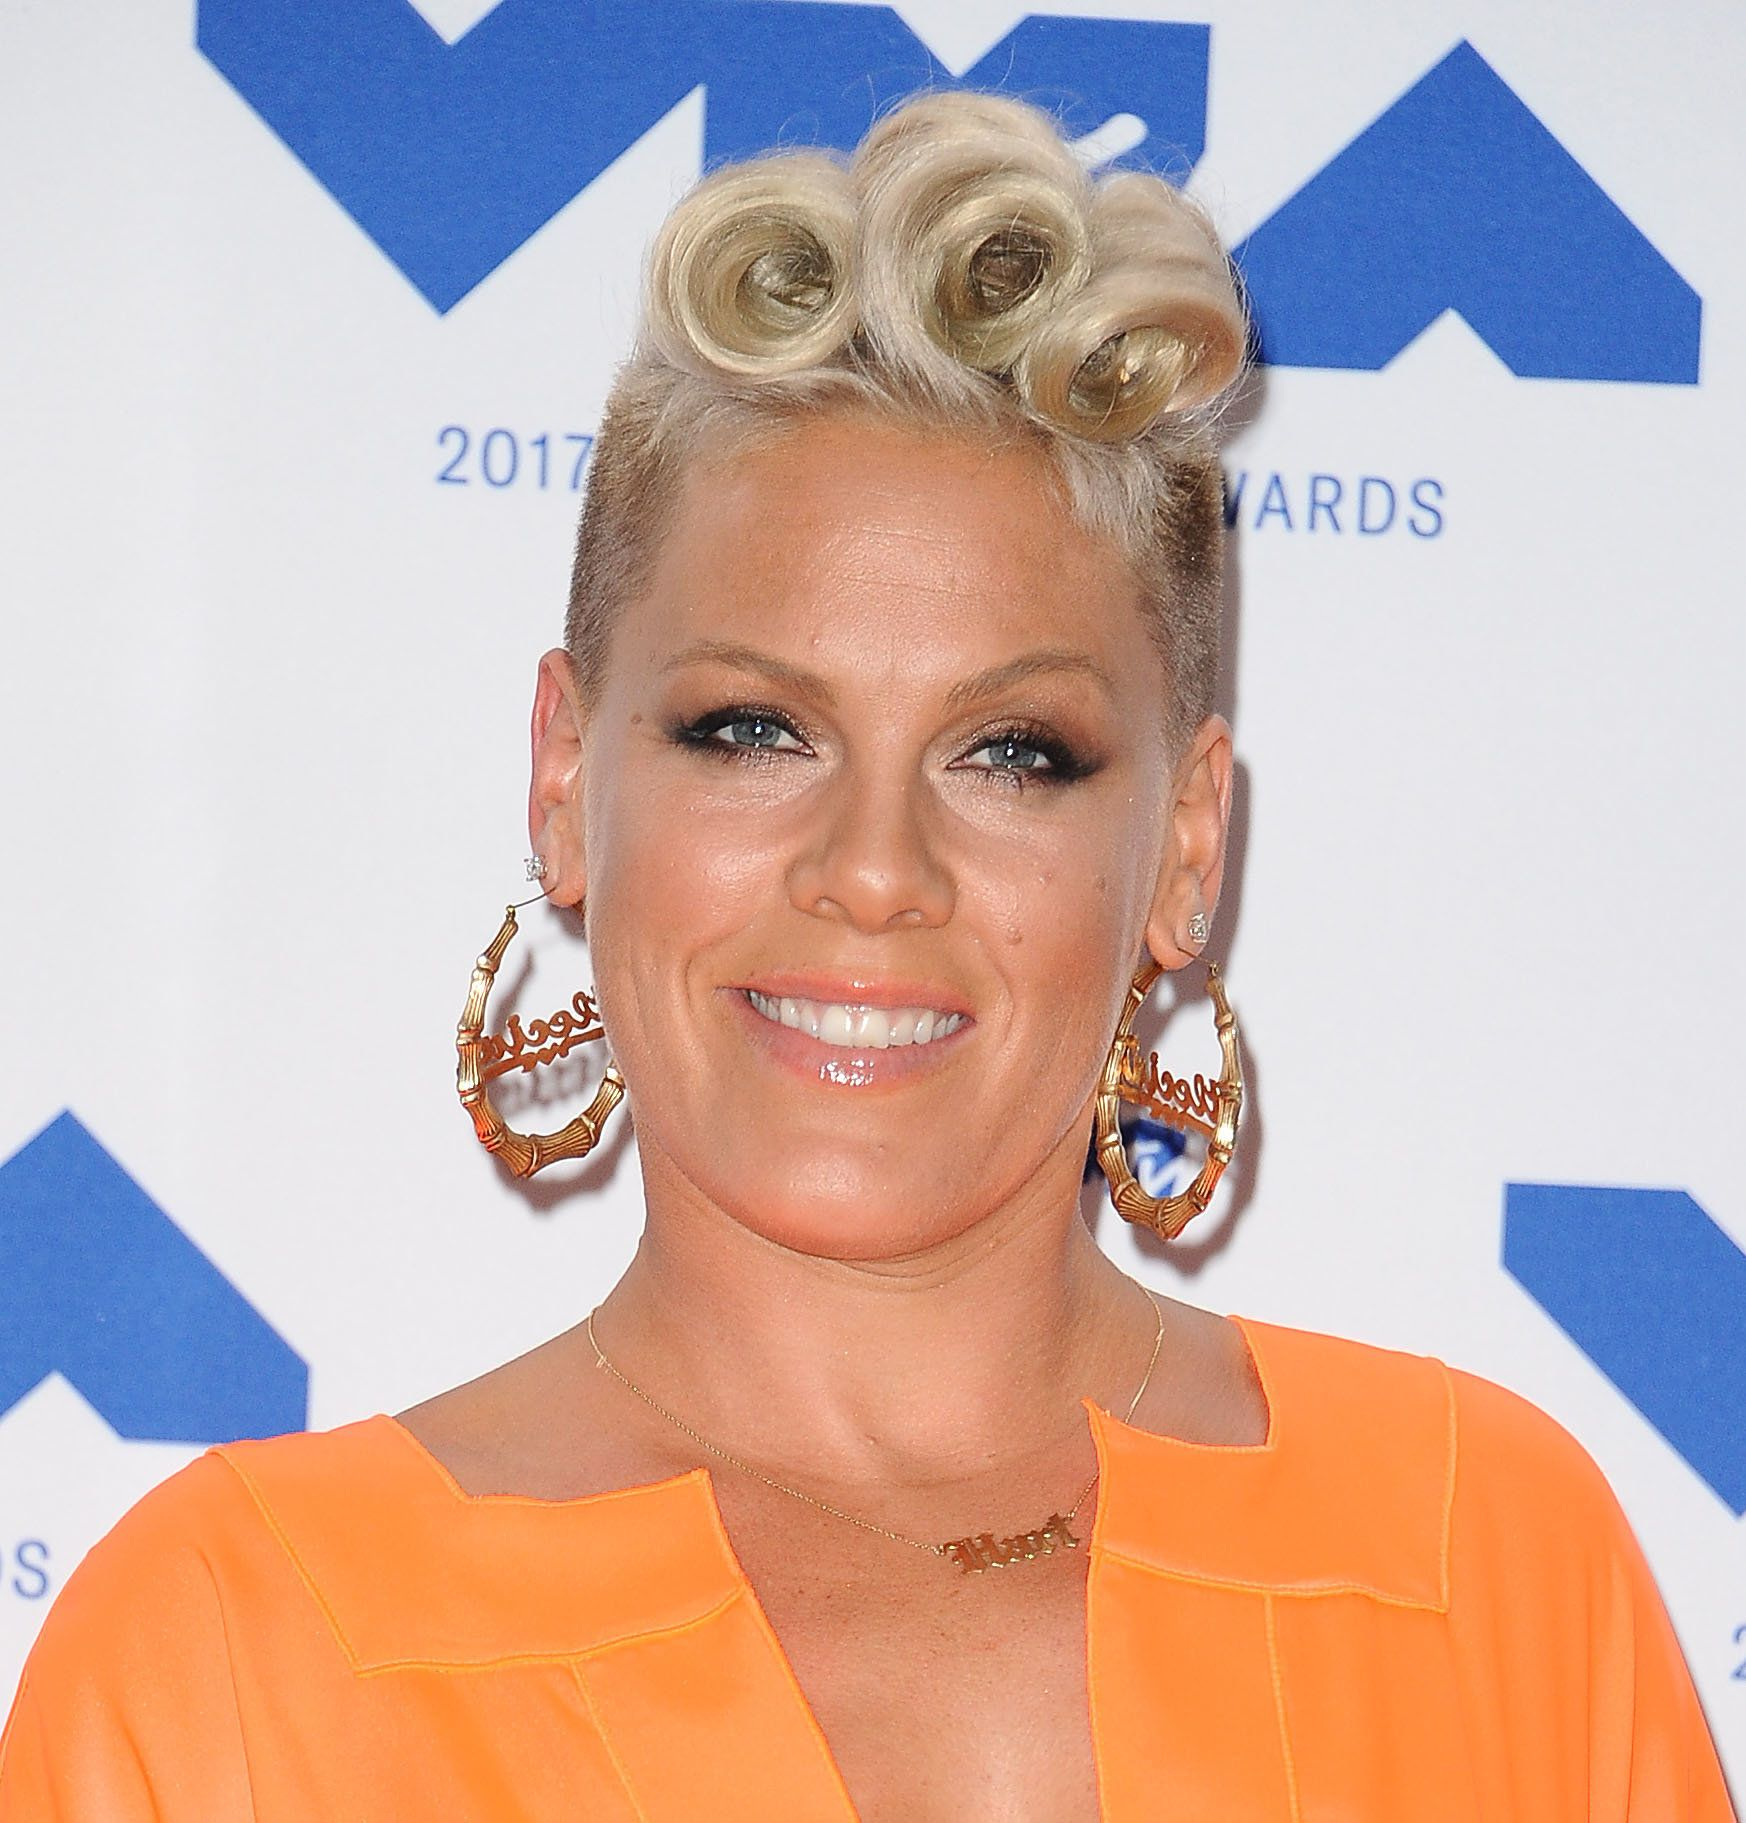 INGLEWOOD, CA - AUGUST 27:  Singer Pink poses in the press room at the 2017 MTV Video Music Awards at The Forum on August 27, 2017 in Inglewood, California.  (Photo by Jason LaVeris/FilmMagic)